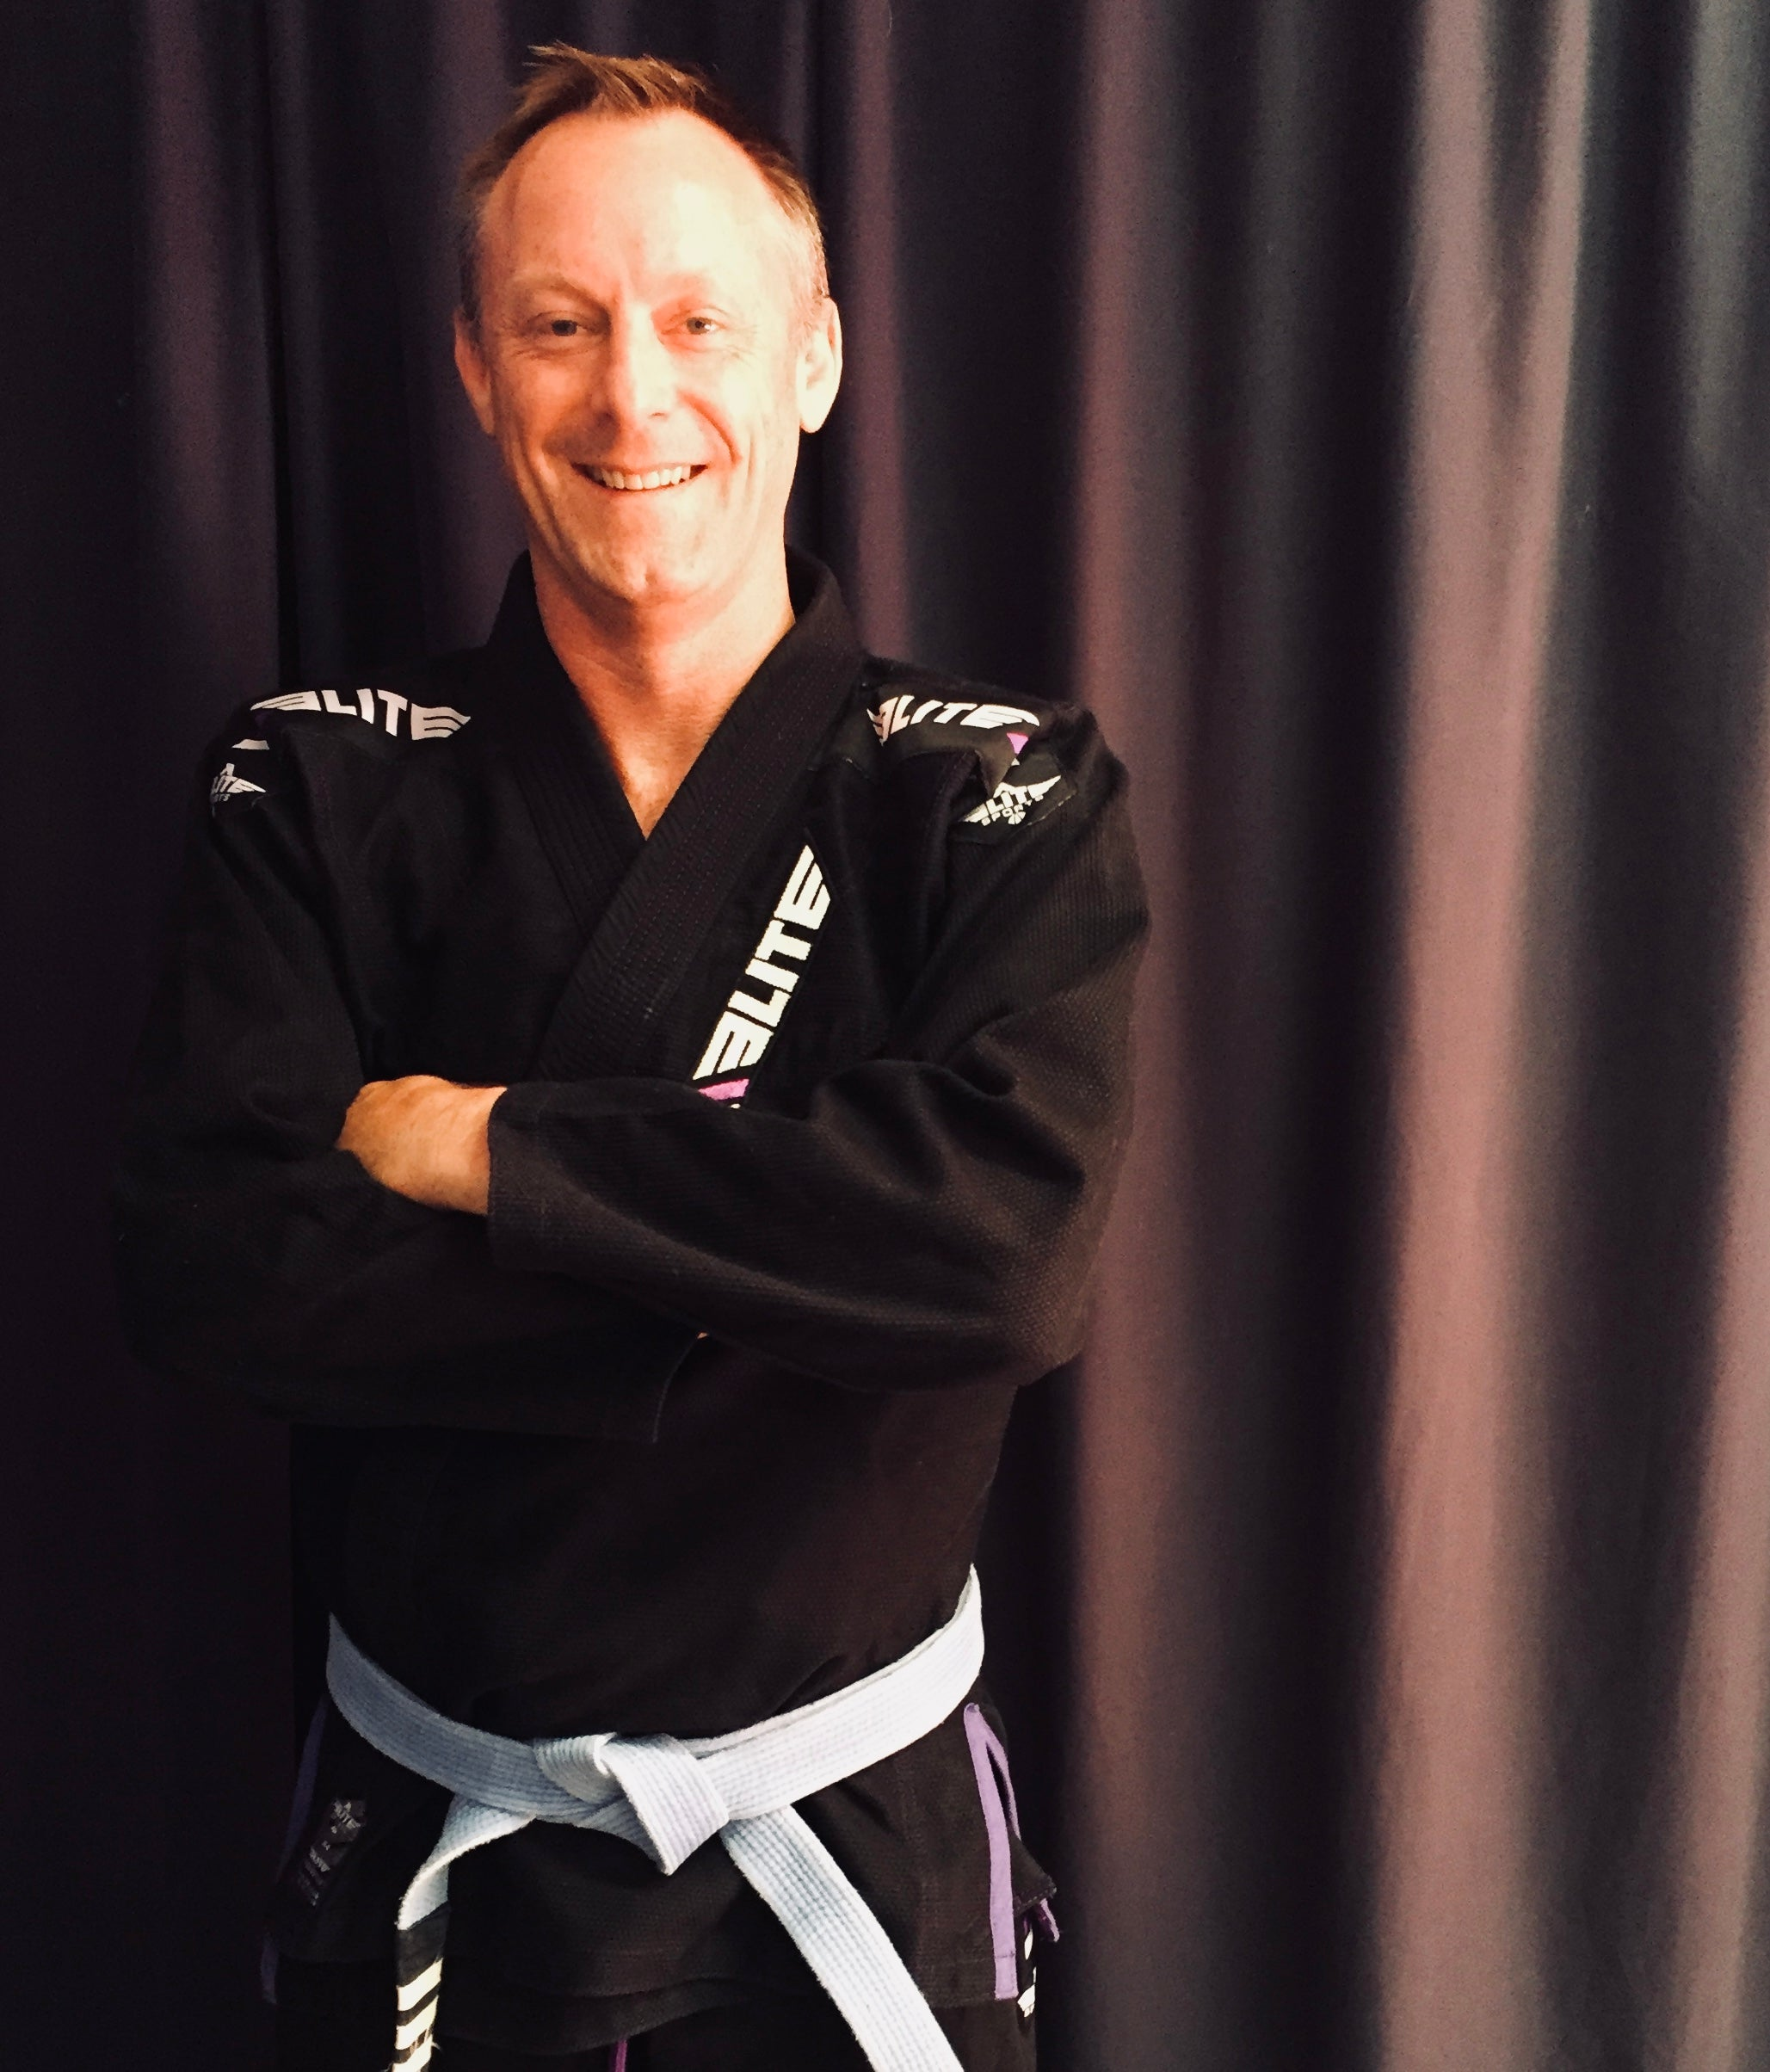 Elite Sports Team Elite Bjj Fighter Jim Clifford image2